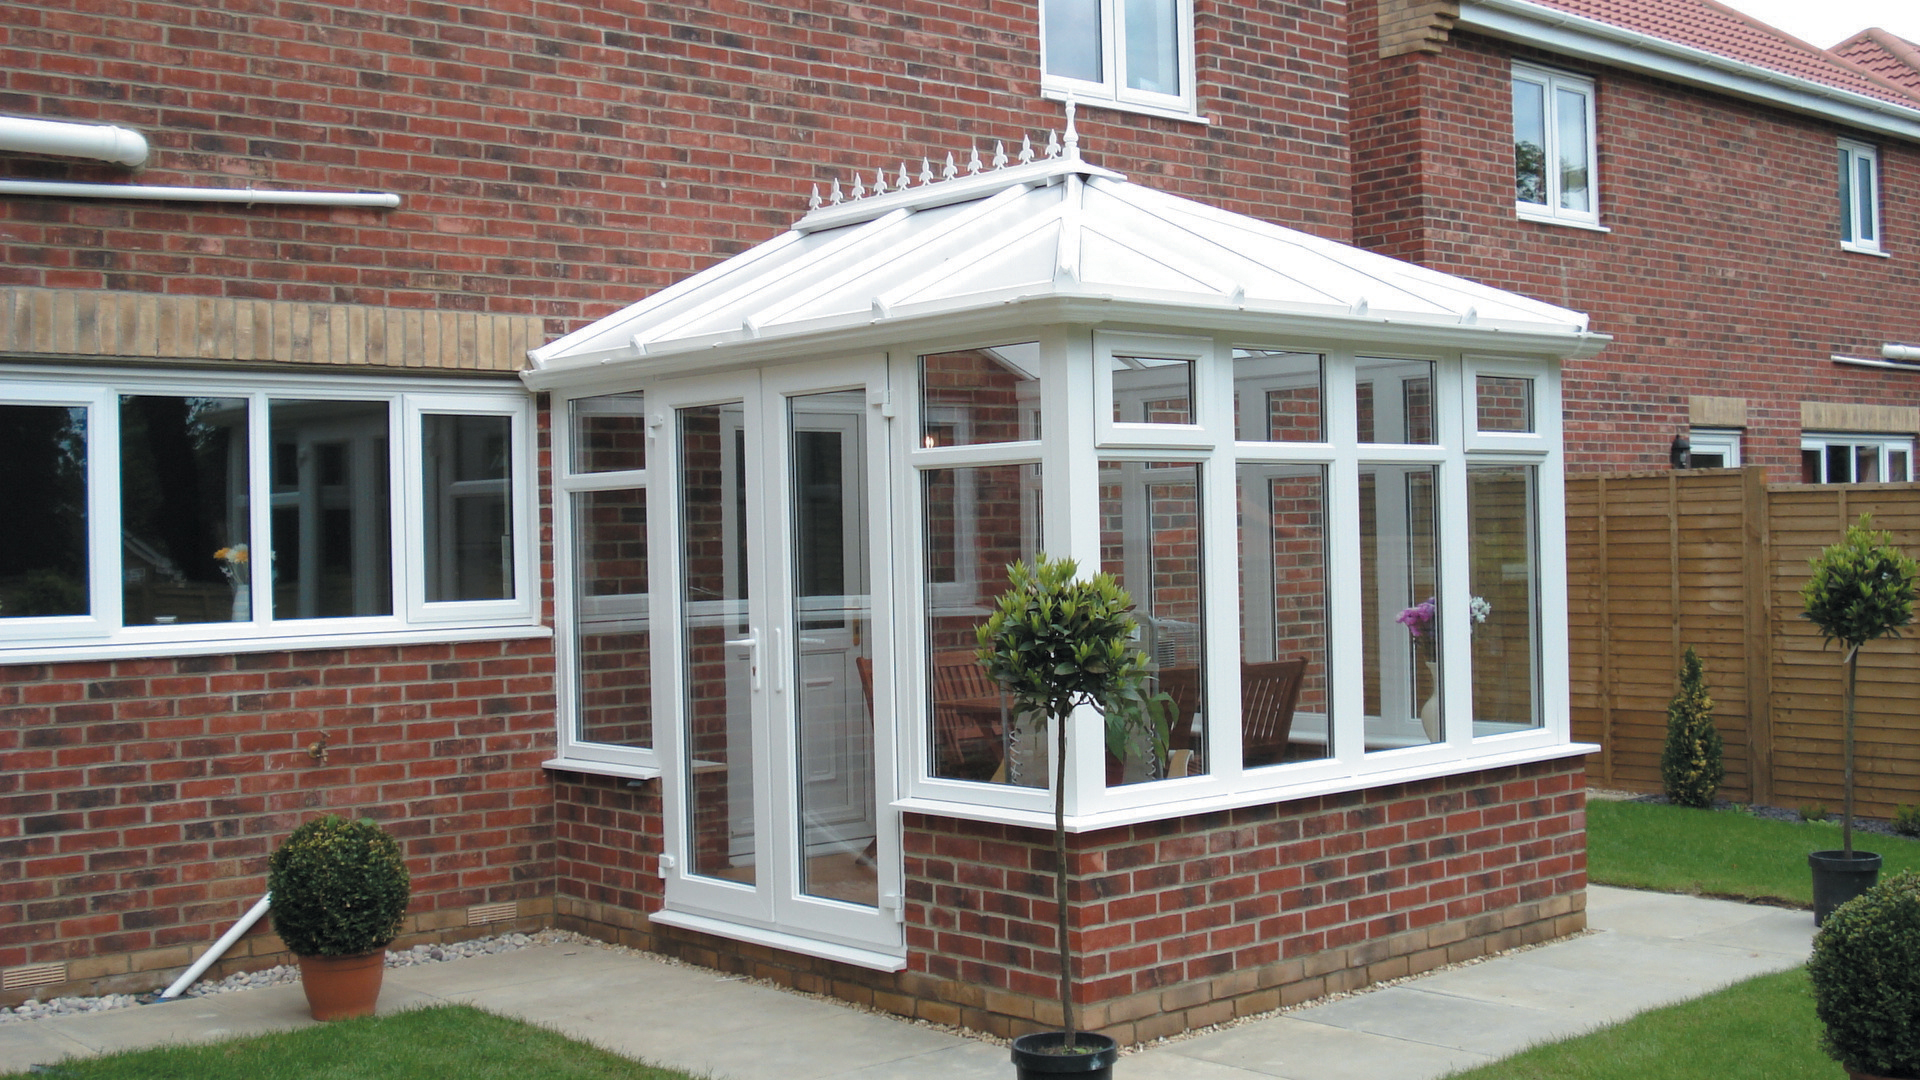 Diy edwardian conservatory for House plans with conservatory